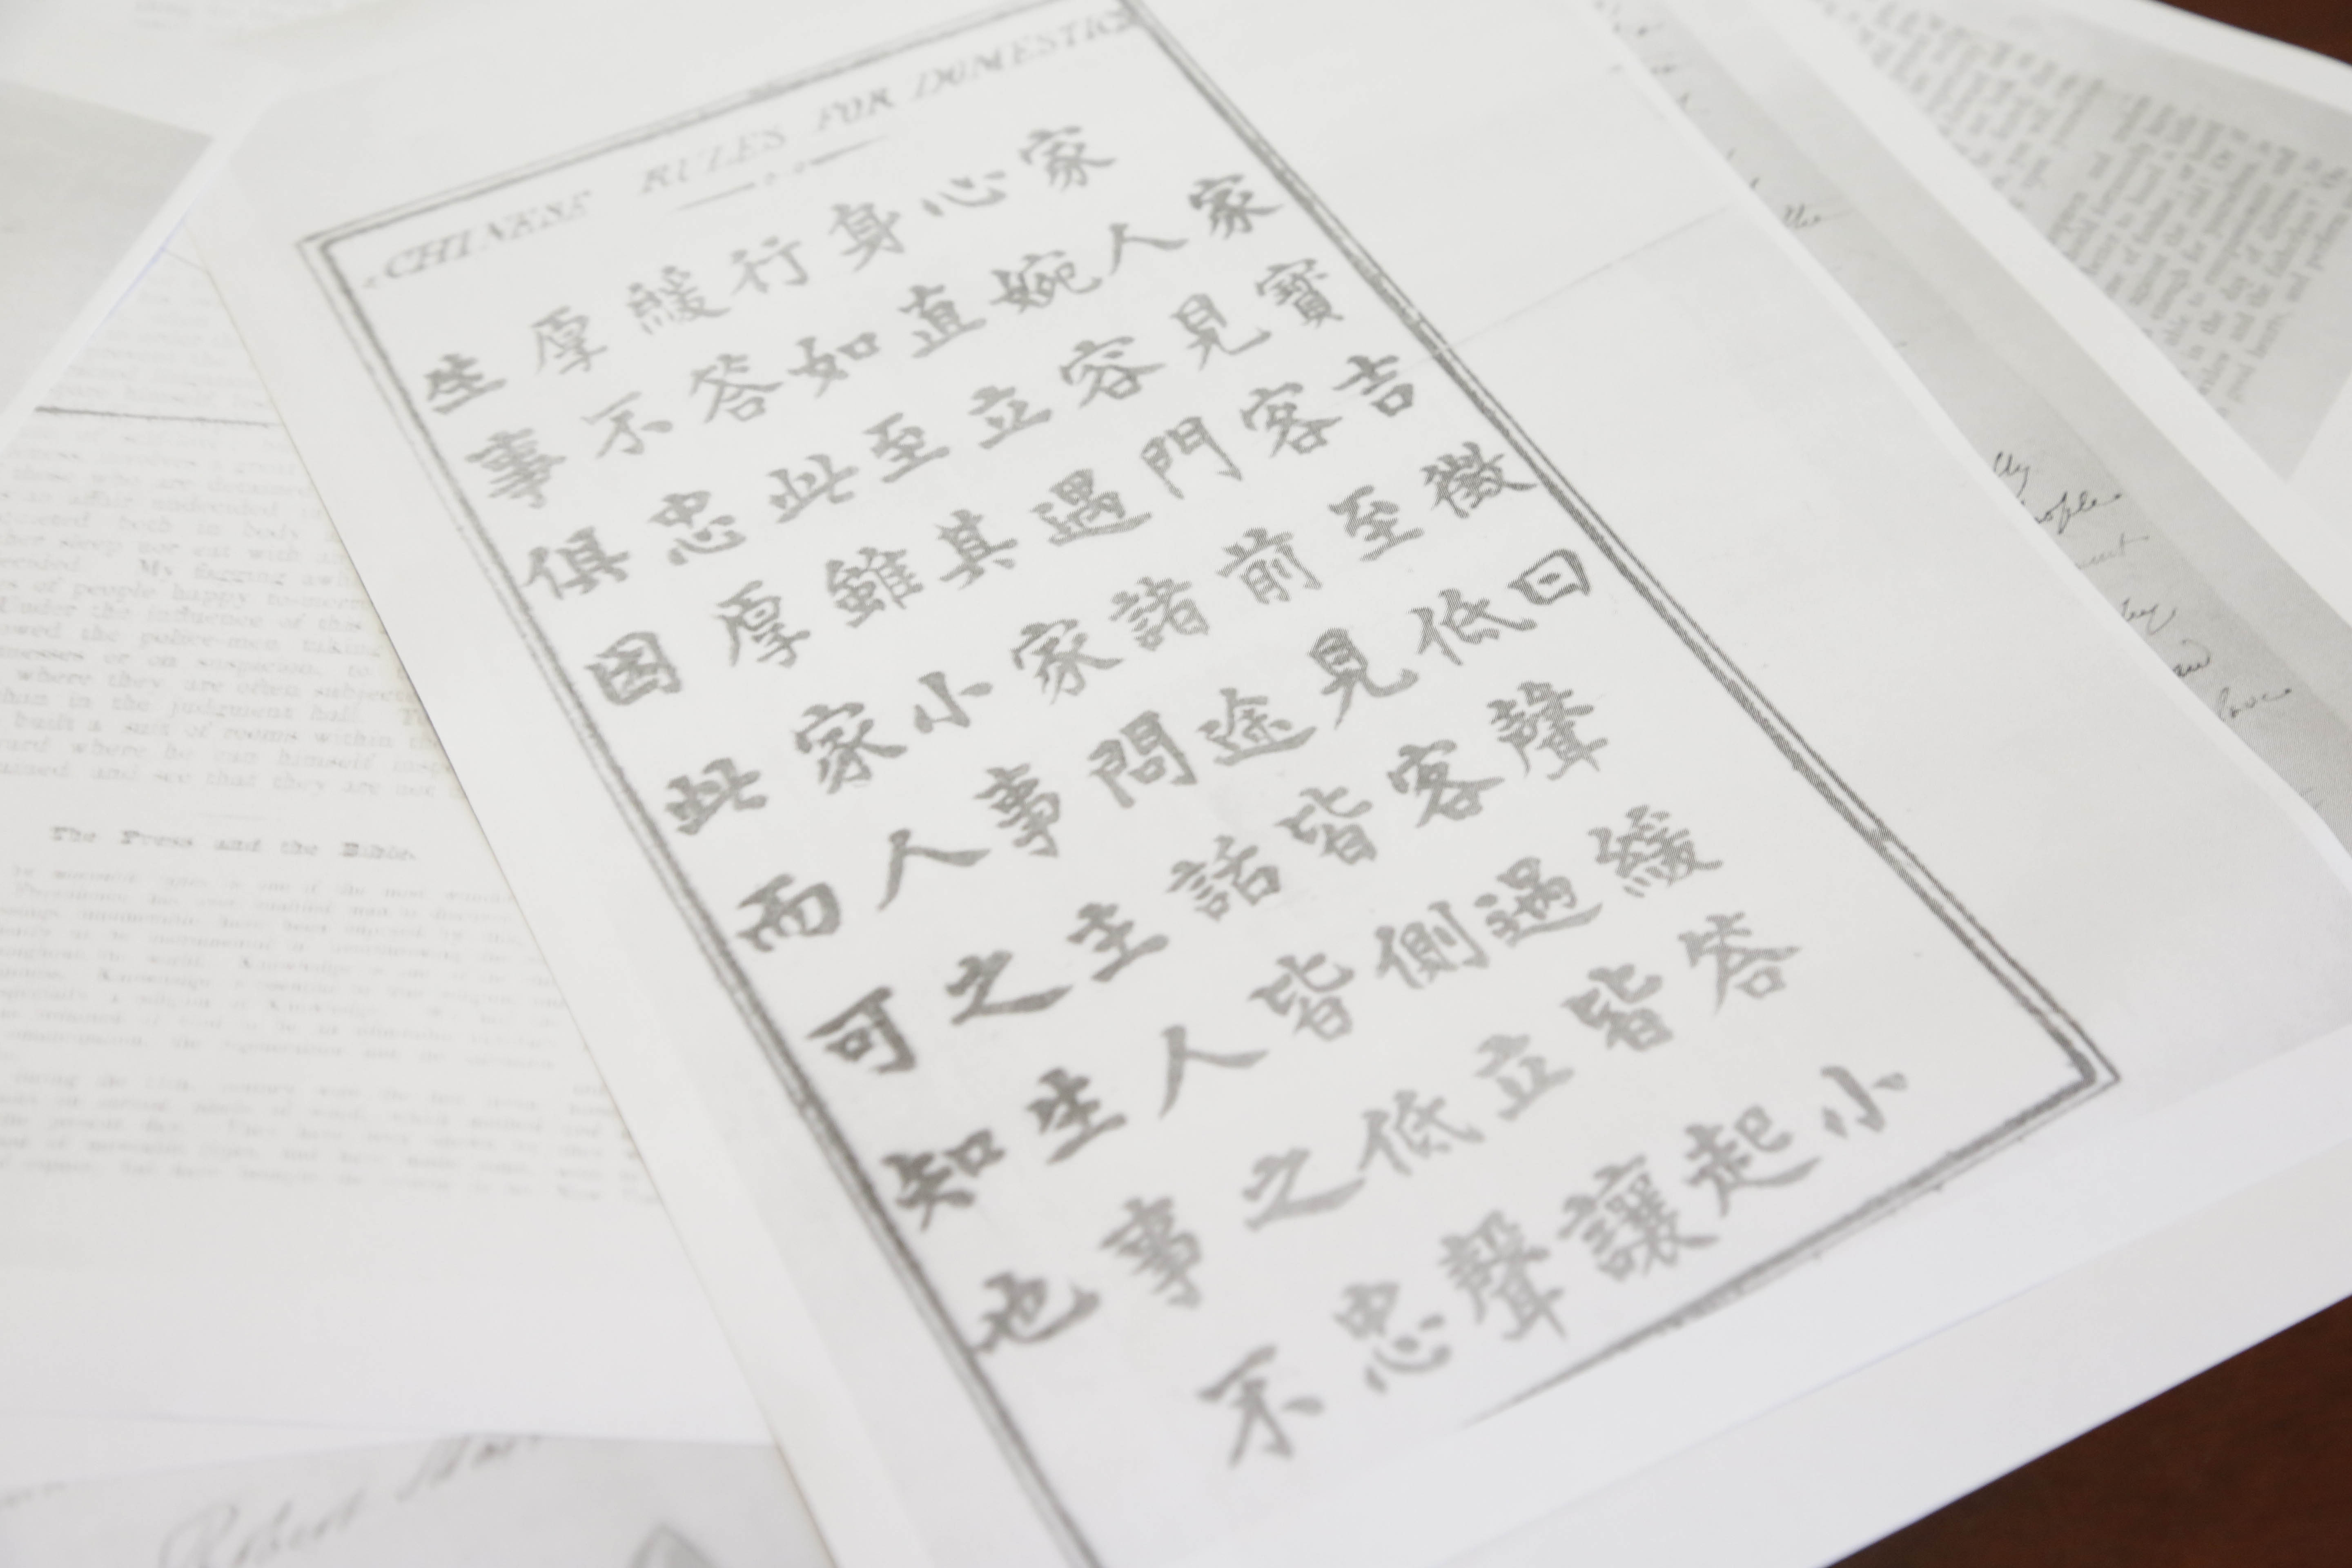 An article that teaches foreigners how to train Chinese domestic servants, which was published in 1831 in A Miscellaneous Paper